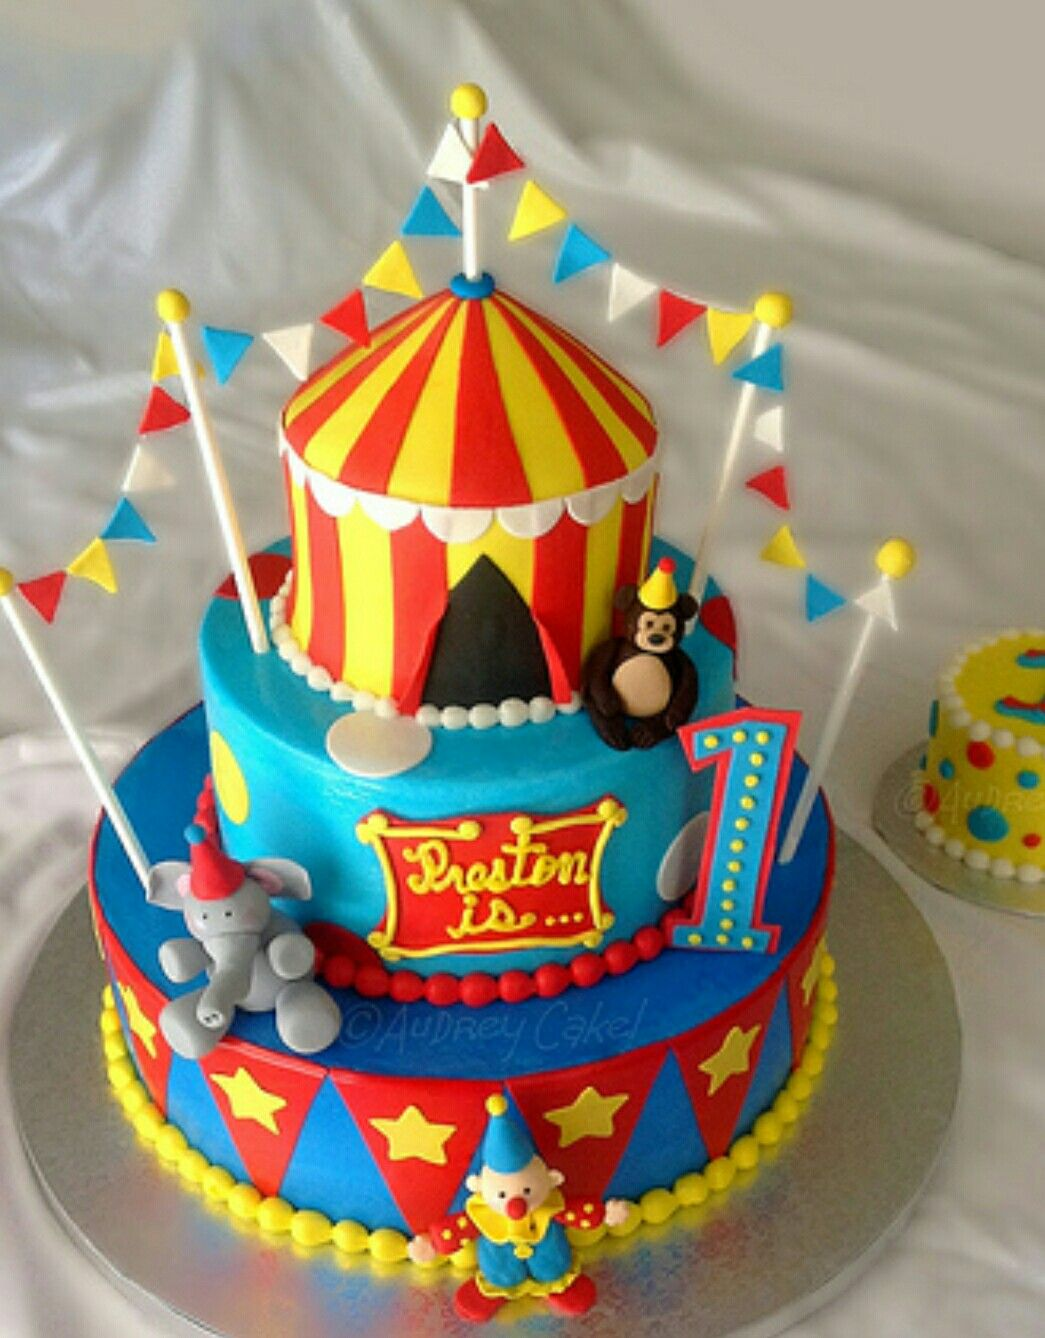 Astonishing Circus Tent Cake Carnival Birthday Cakes Circus Birthday Cake Personalised Birthday Cards Cominlily Jamesorg